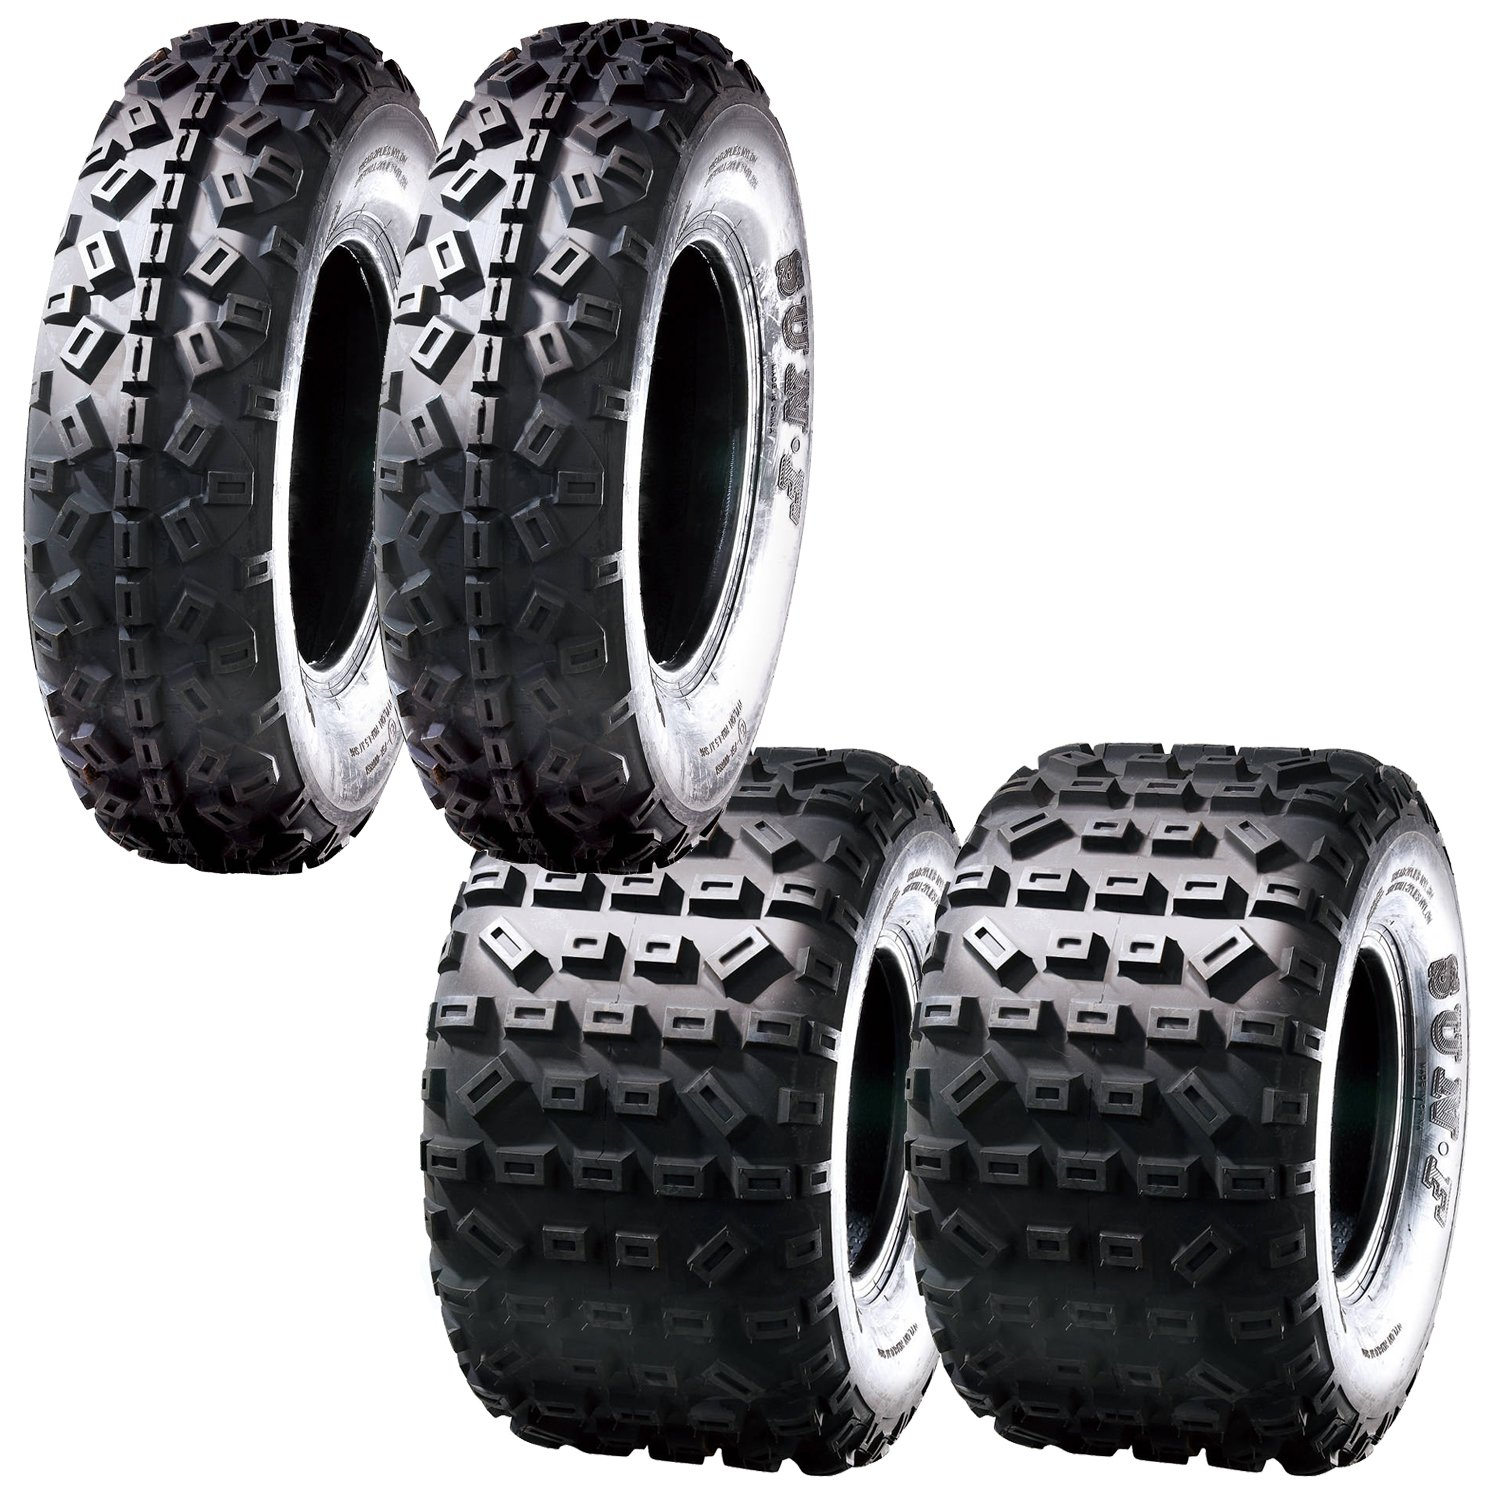 SunF Knobby XC MX ATV Tires 21x6-10 & 20x11-9 6 PR A035 (Full set of 4, Front & Rear) by SunF (Image #1)